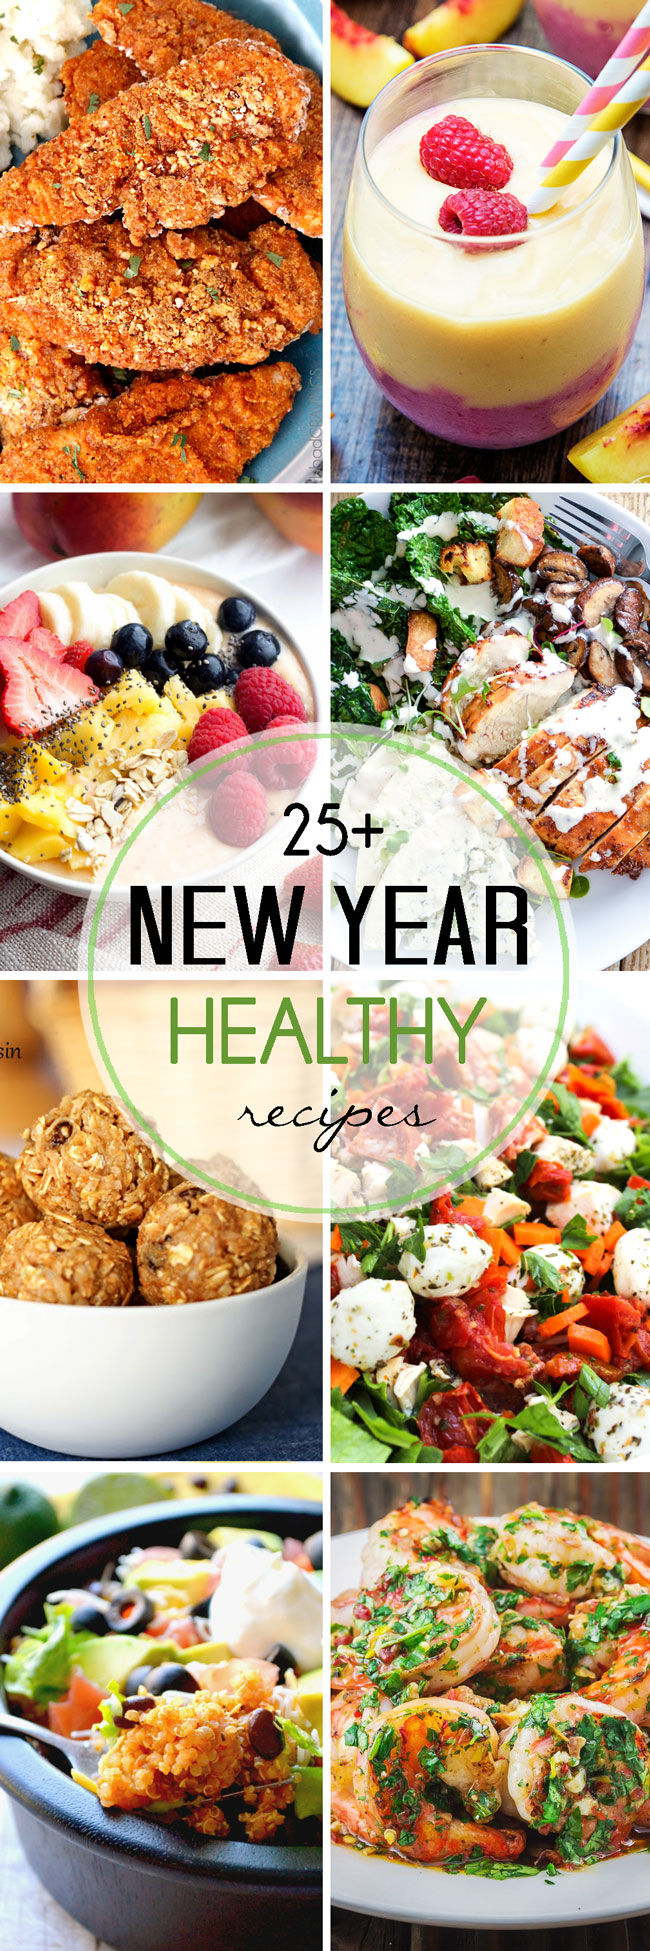 Over 25 recipes that are perfect for the new year. Healthy choices made easy, from all your favourite food bloggers.